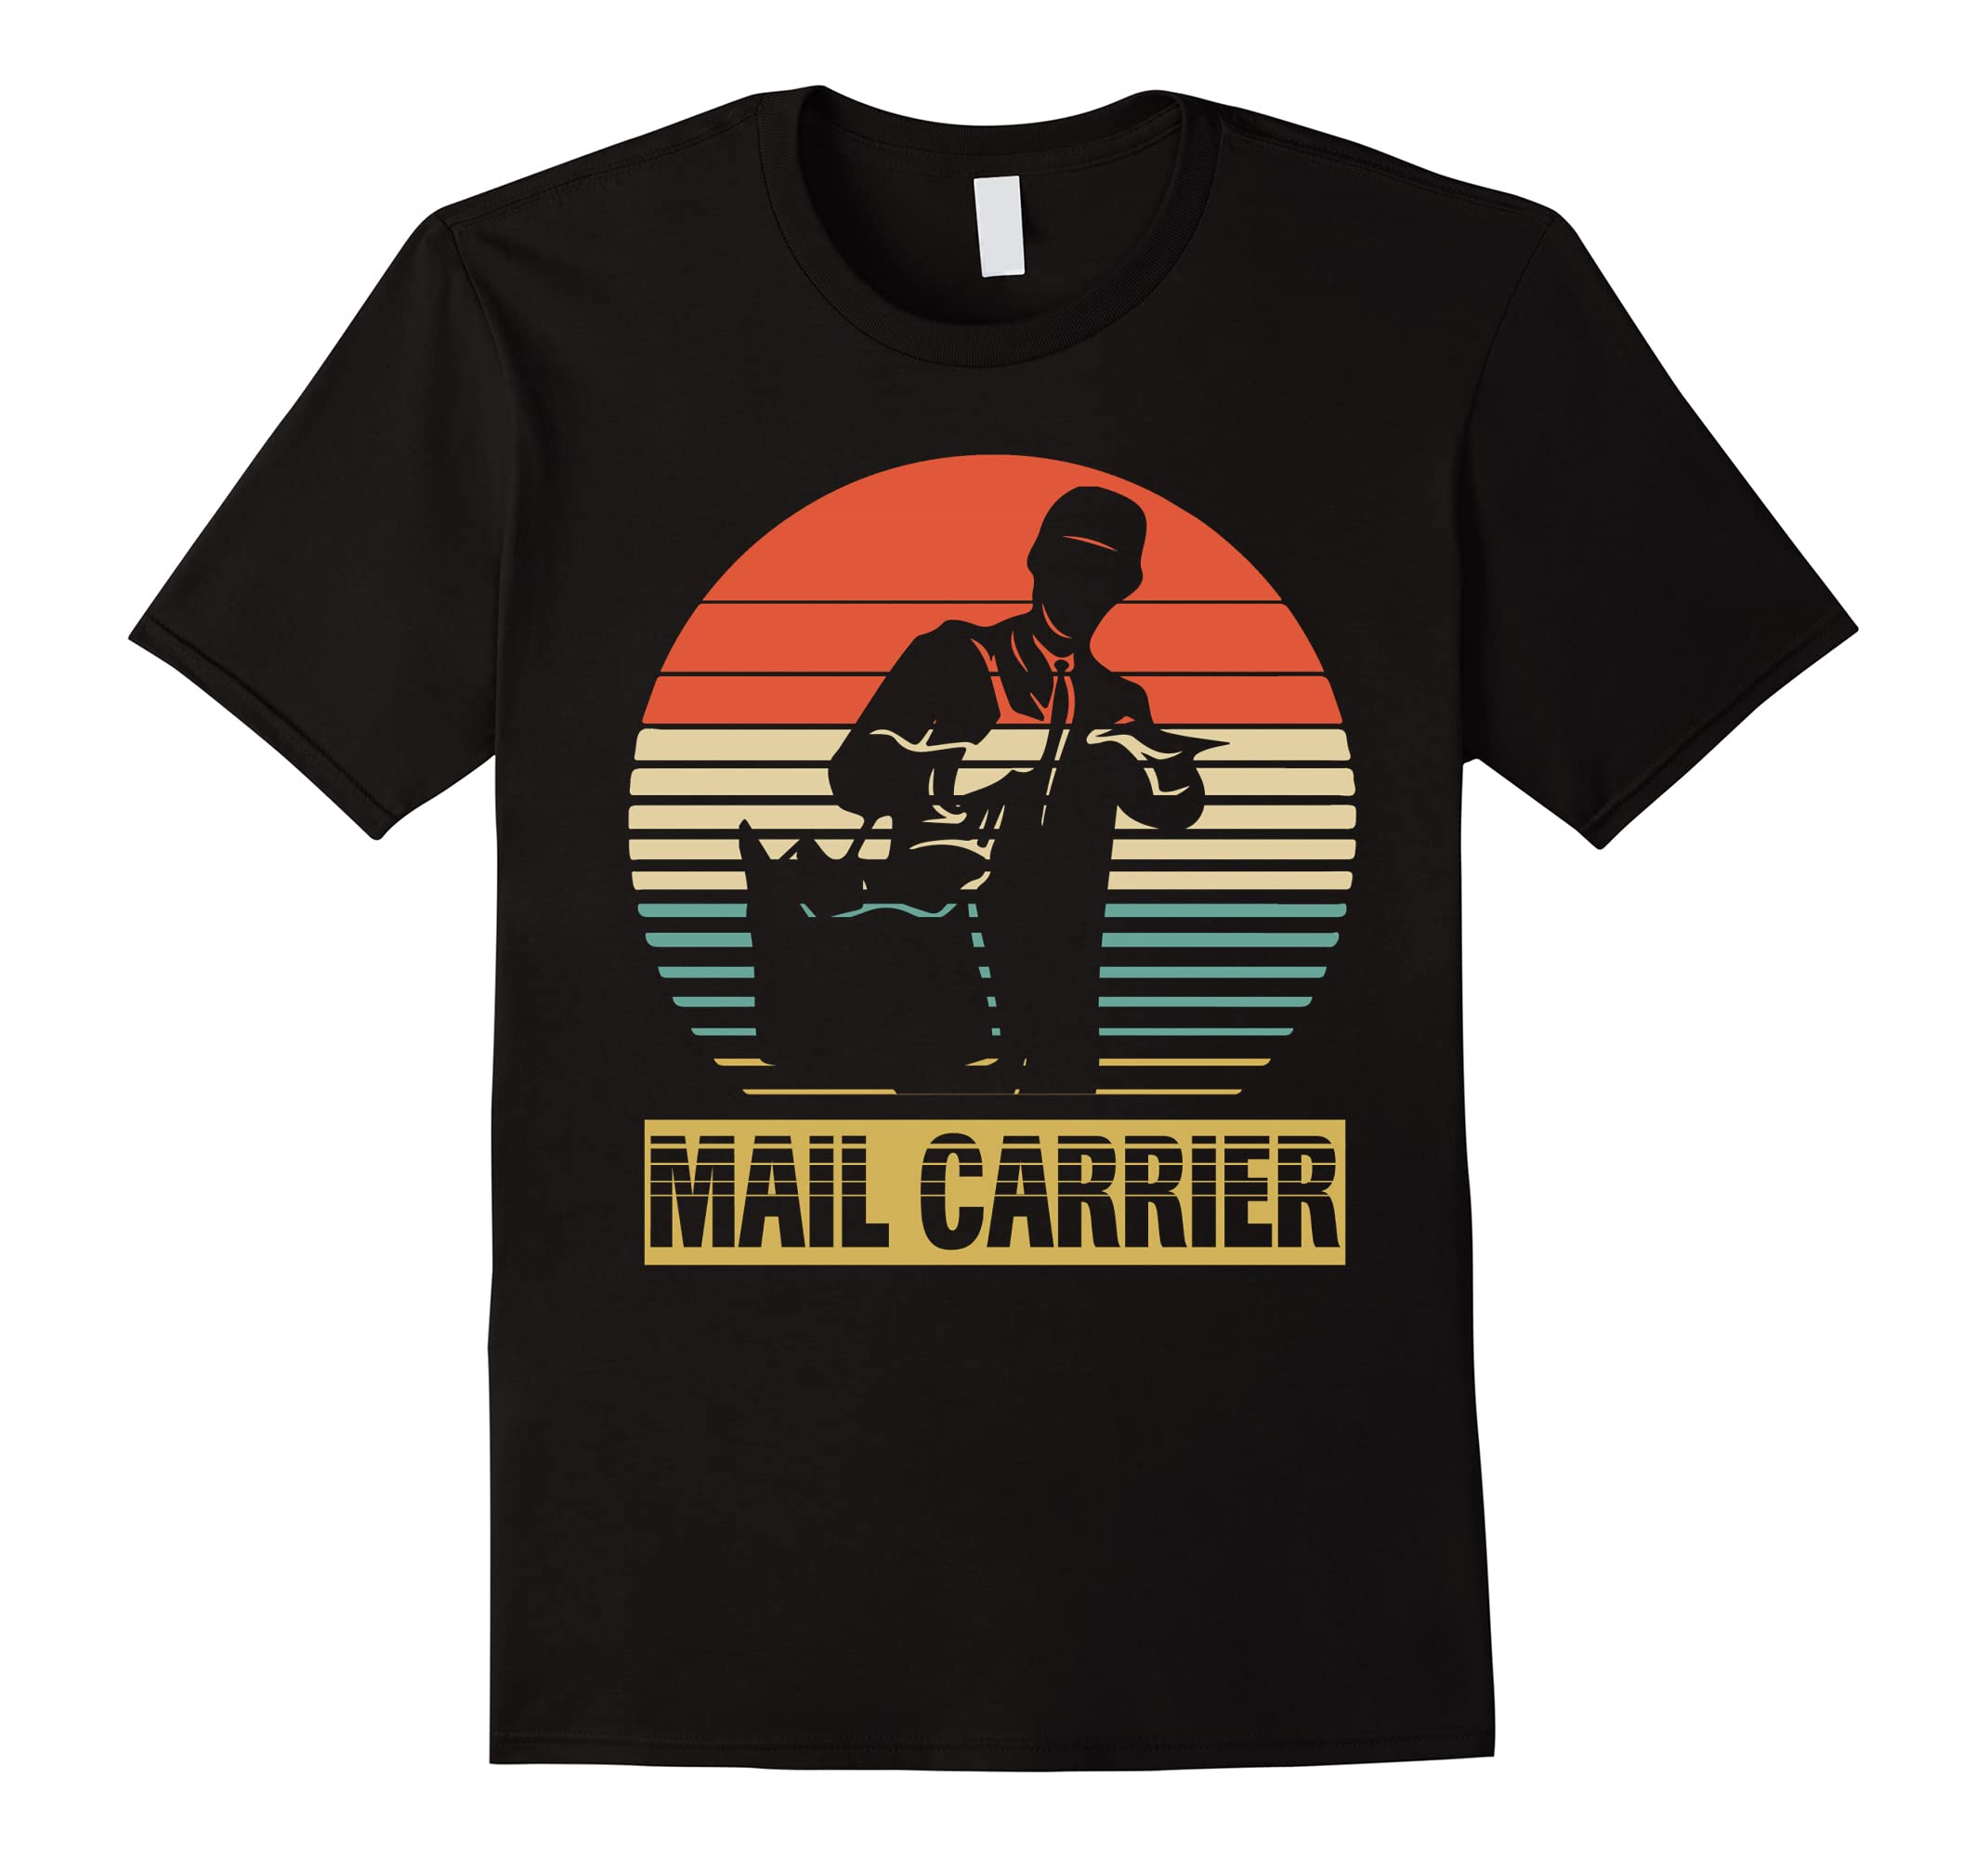 Vintage Shirt For Mail Carrier Birthday Gifts